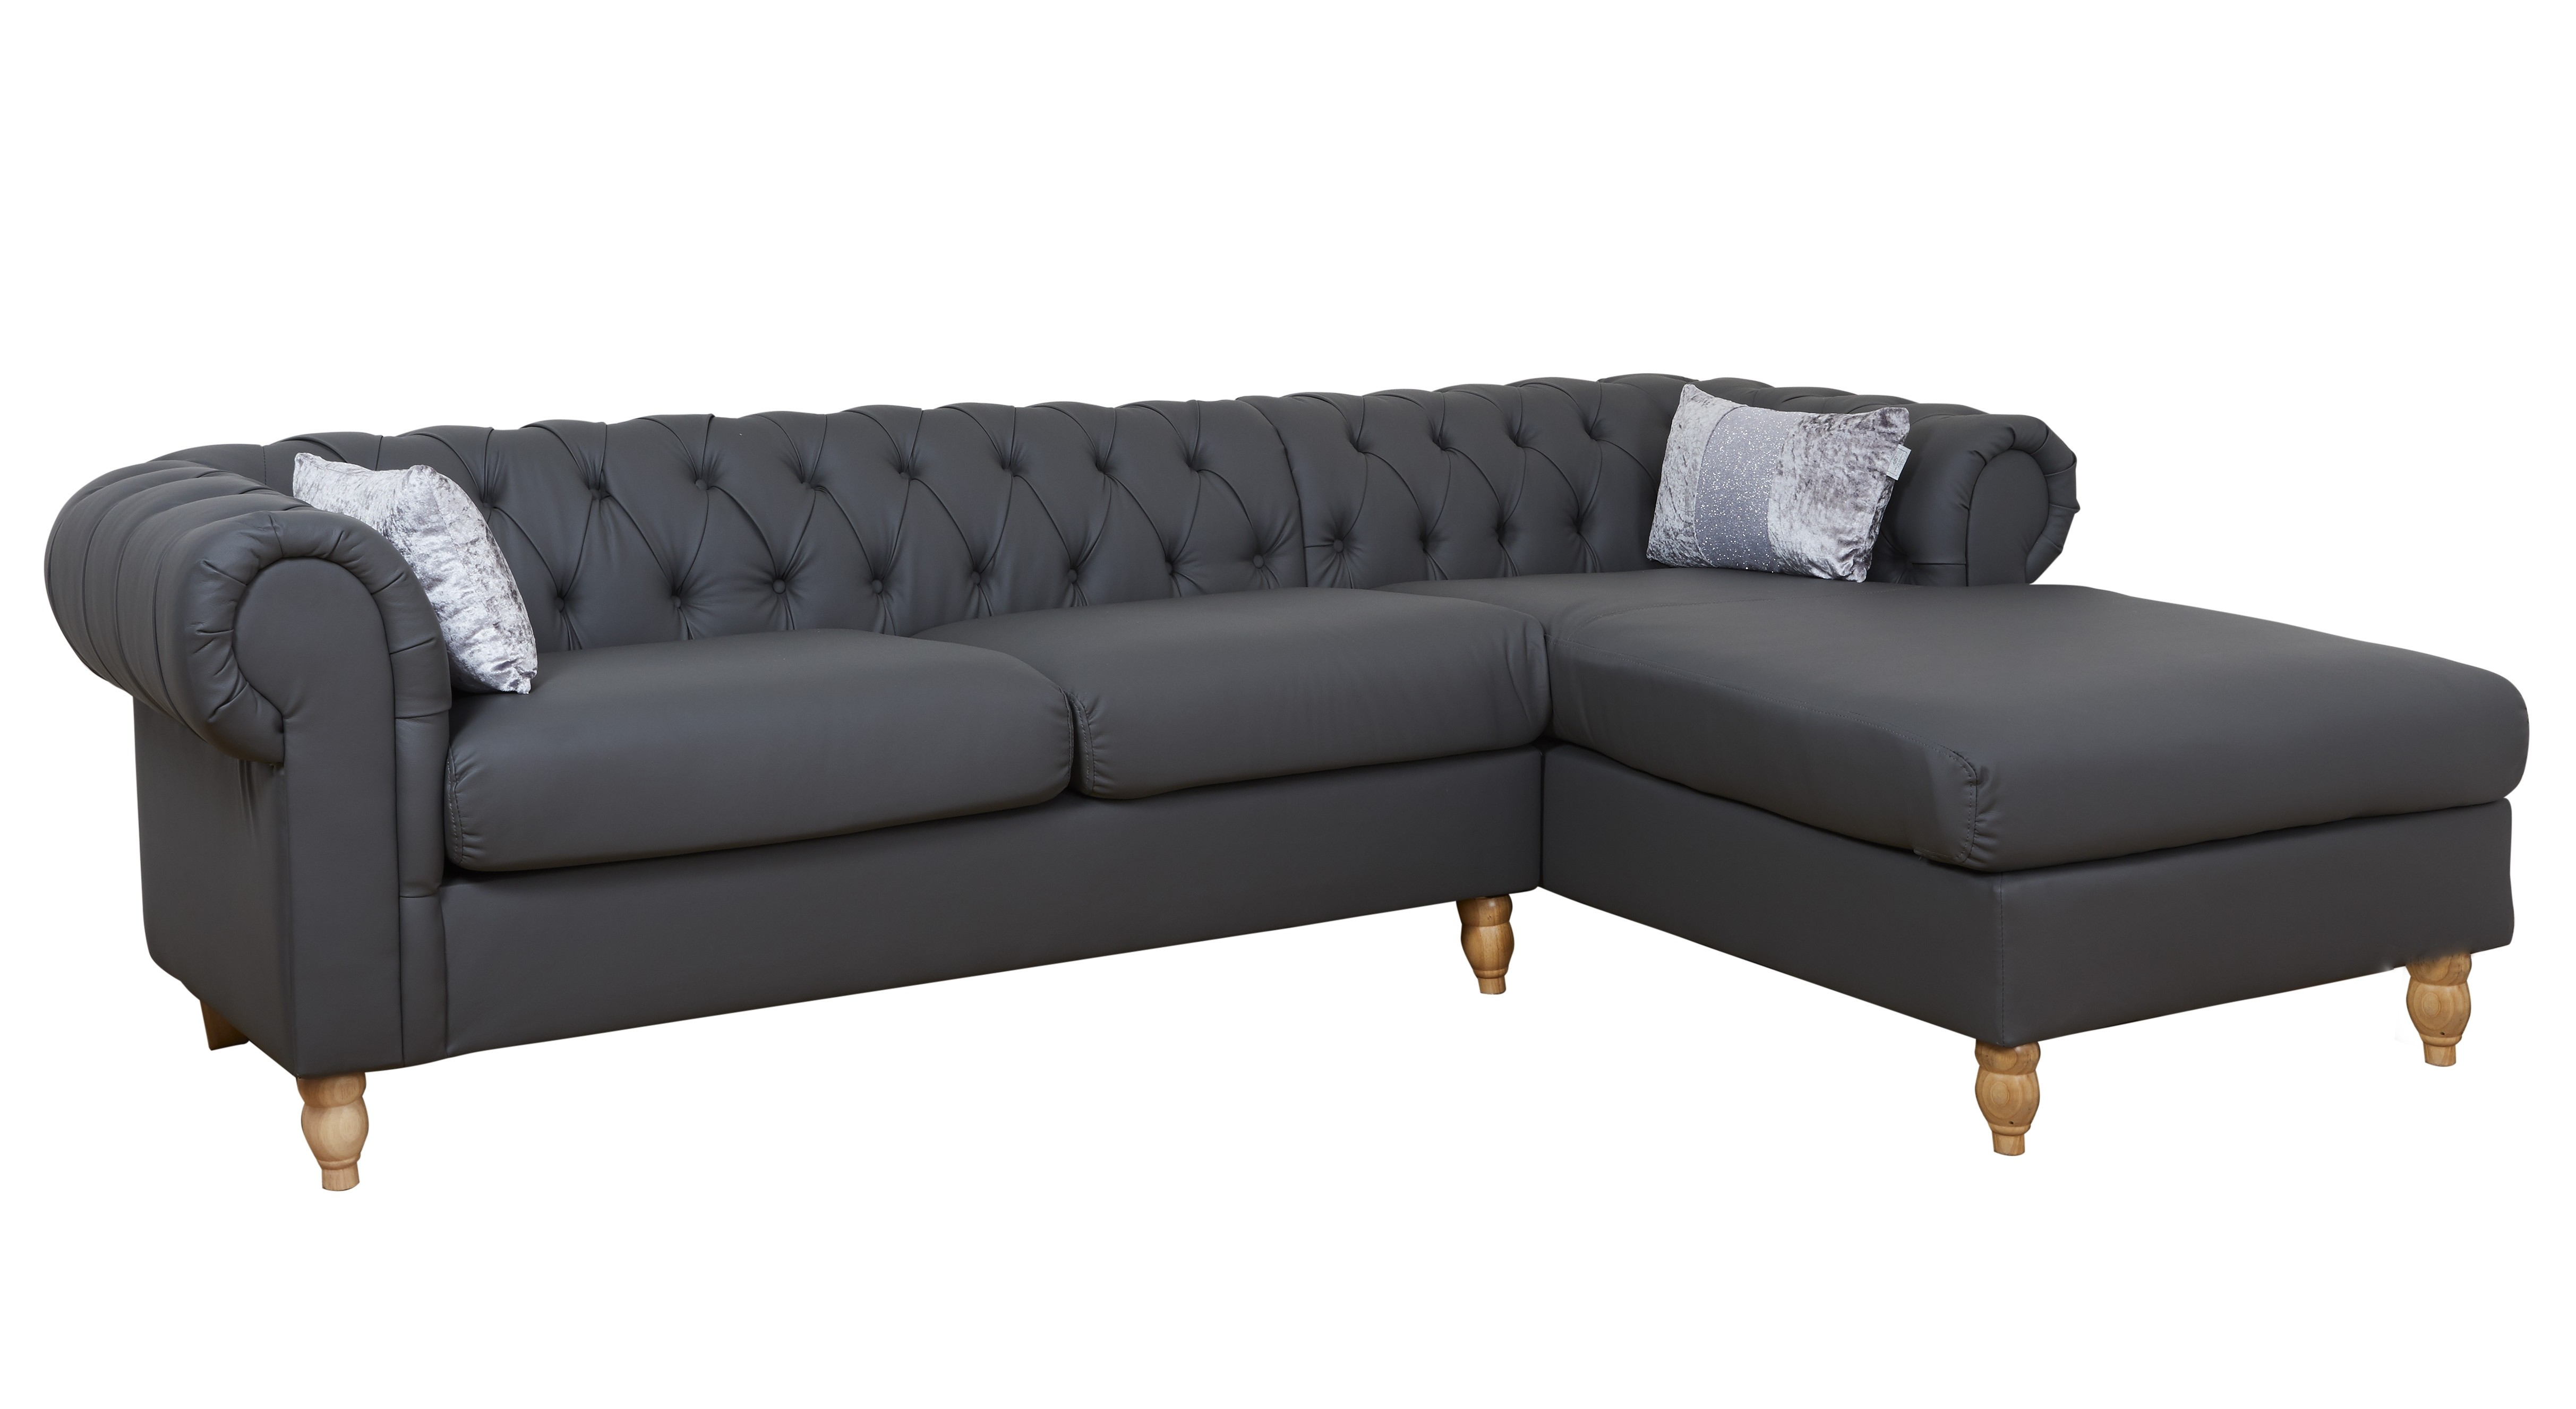 Incredible Canterbury Grey Faux Leather Corner Chesterfield With Rh Chaise Inzonedesignstudio Interior Chair Design Inzonedesignstudiocom